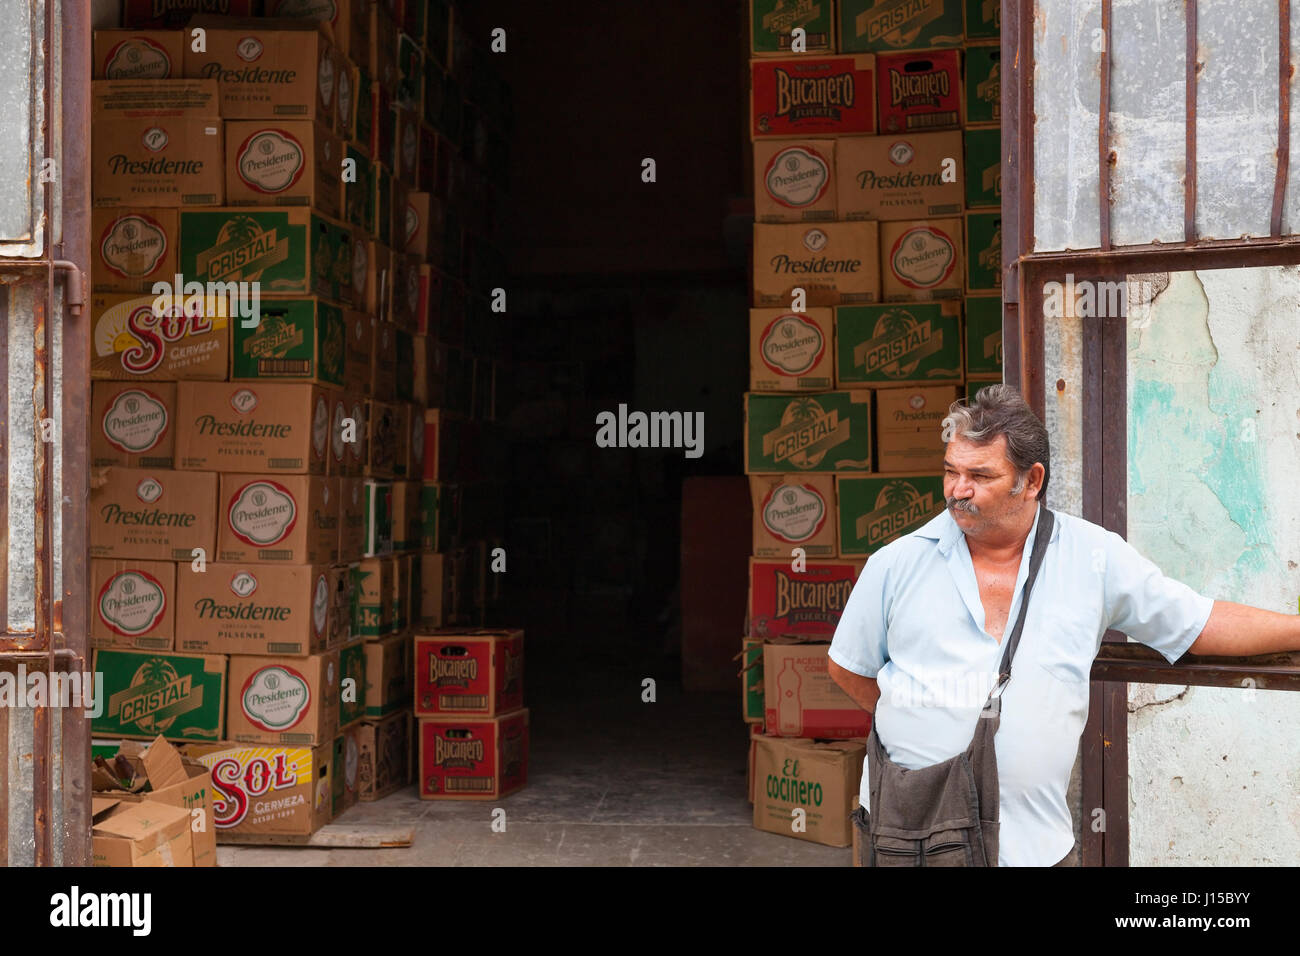 A man standing in front of building used for storing cases of beer in Havana, Cuba. - Stock Image